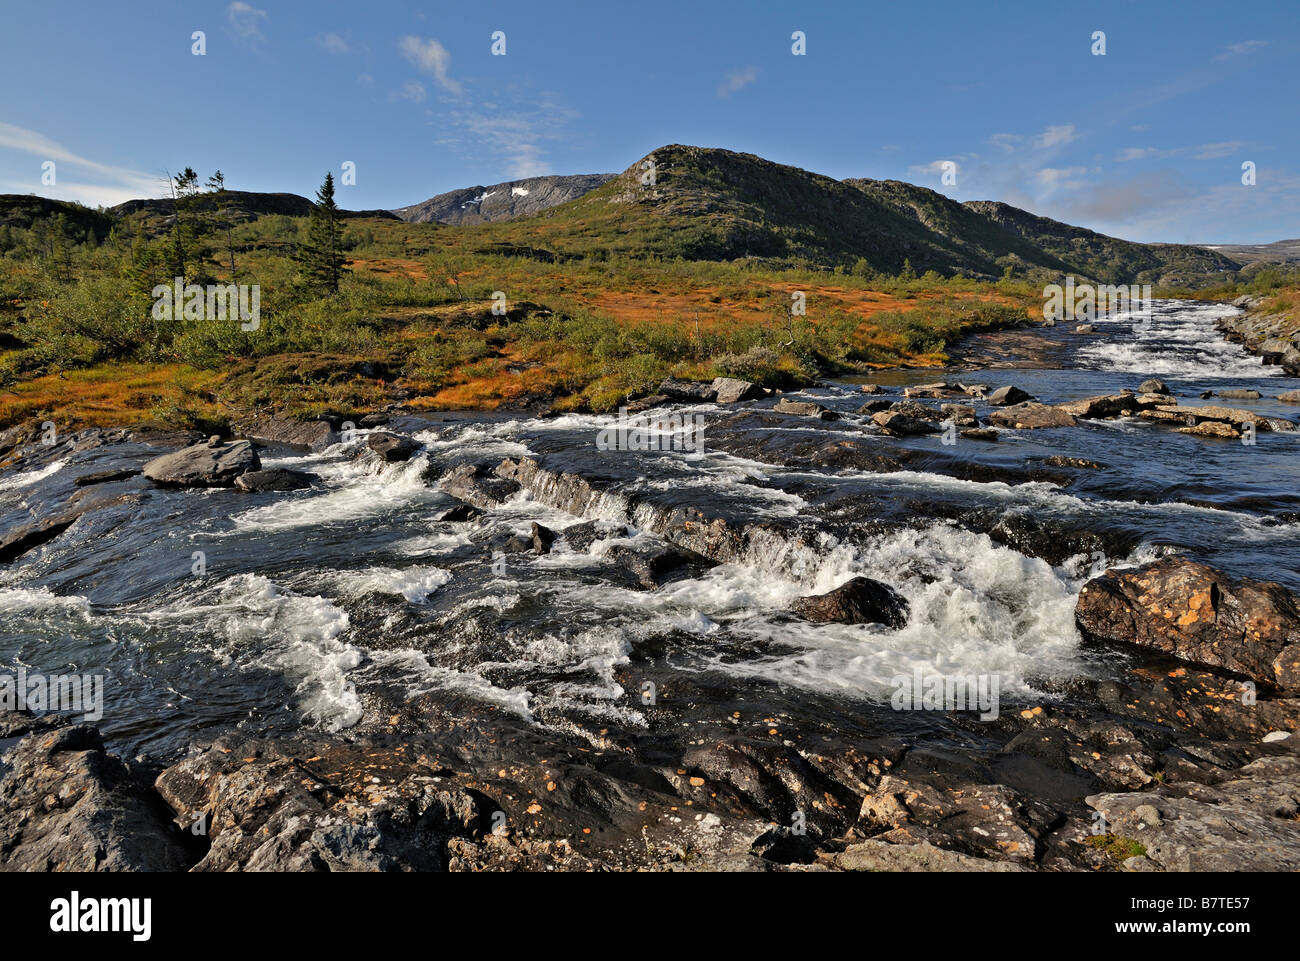 A wild river the Storelva in Tosdale Norway - Stock Image